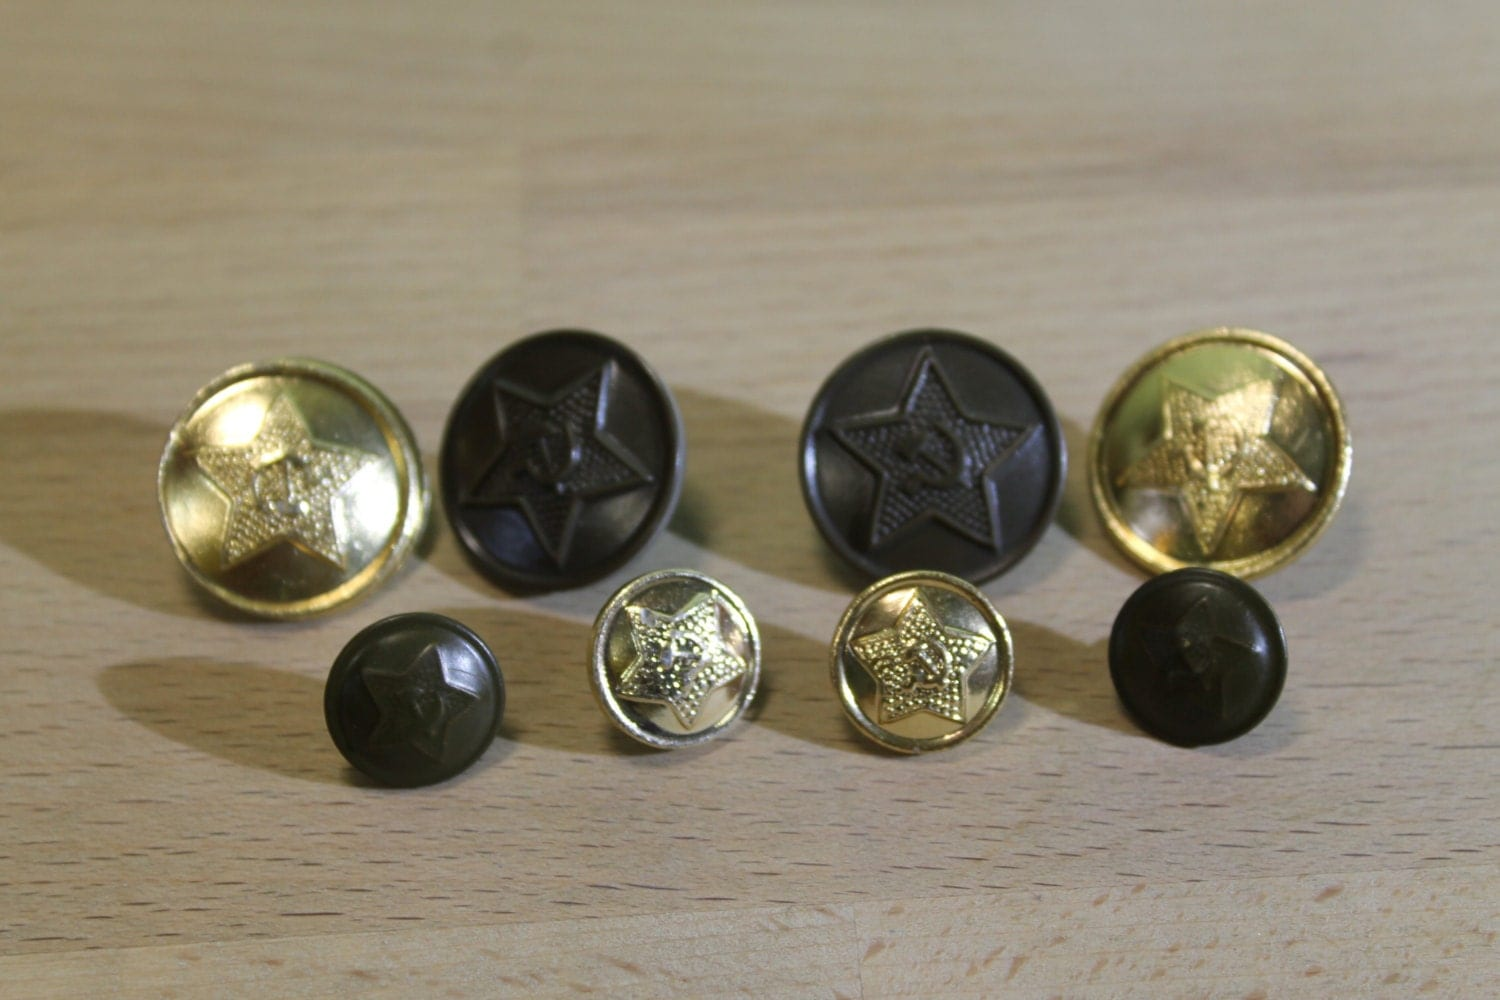 Set of 8 Vintage Soviet Army Buttons ... steampunk supplies ... button steampunk buy now online